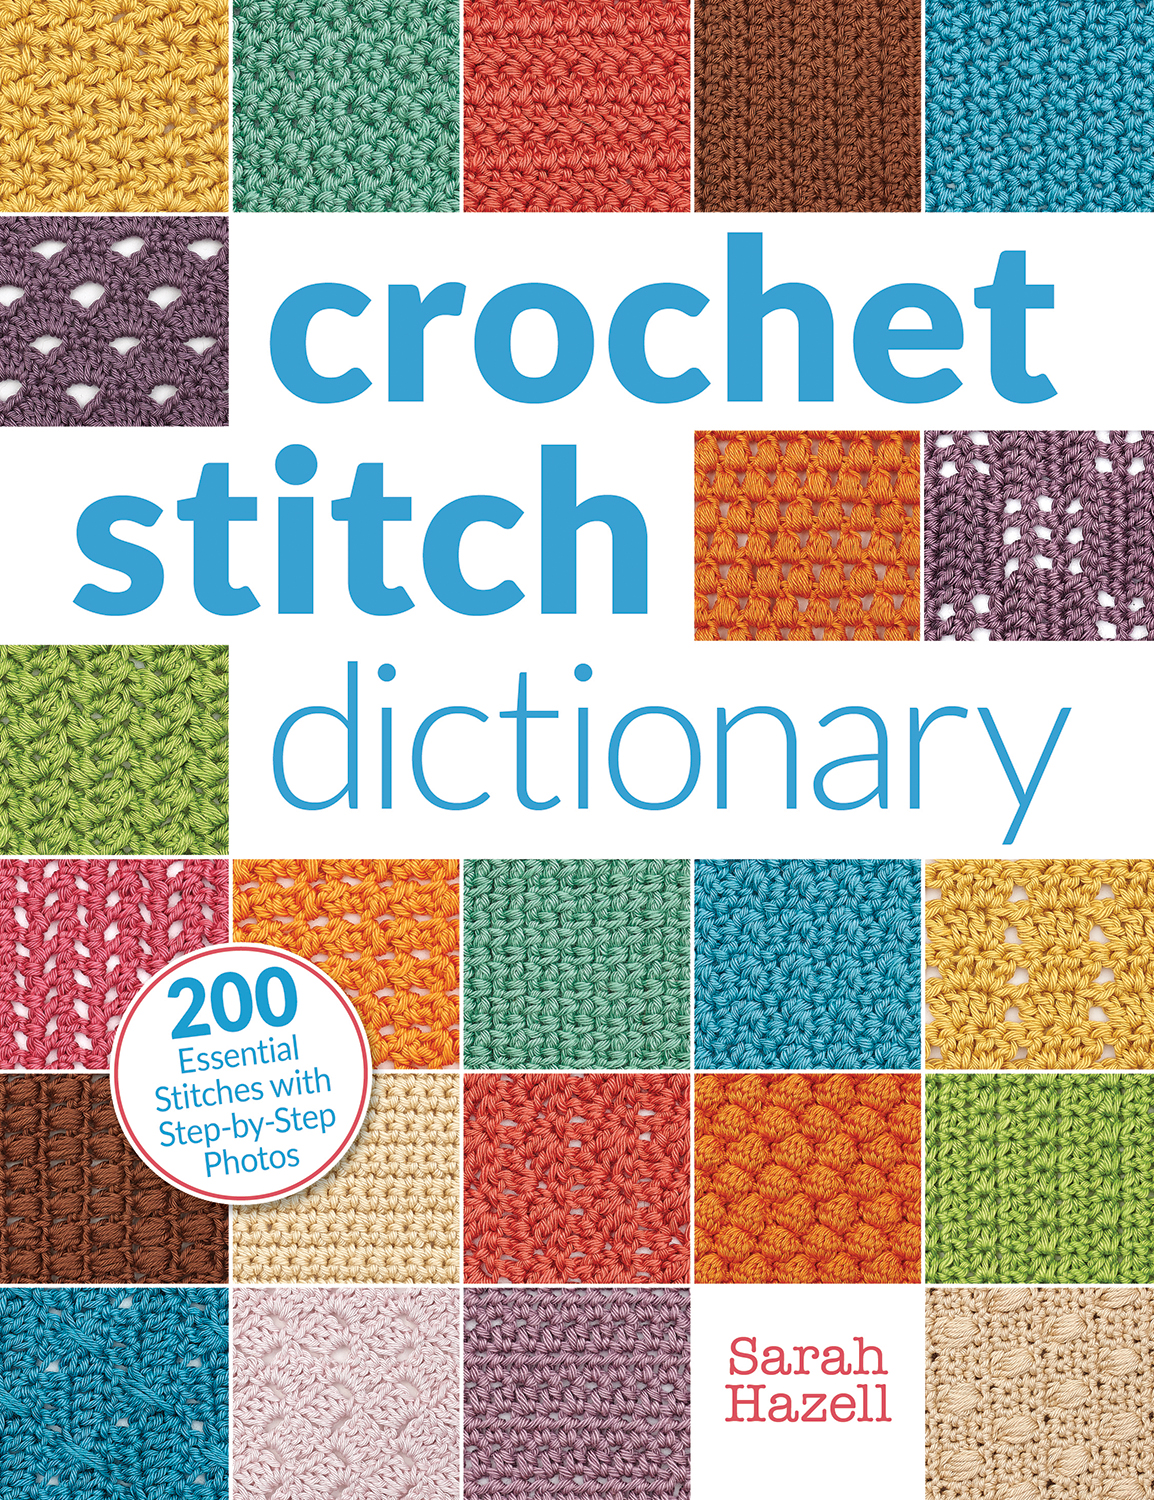 Crochet Stitches Meaning : Crochet Stitch Patterns The crochet doctor?: crochet stitch ...